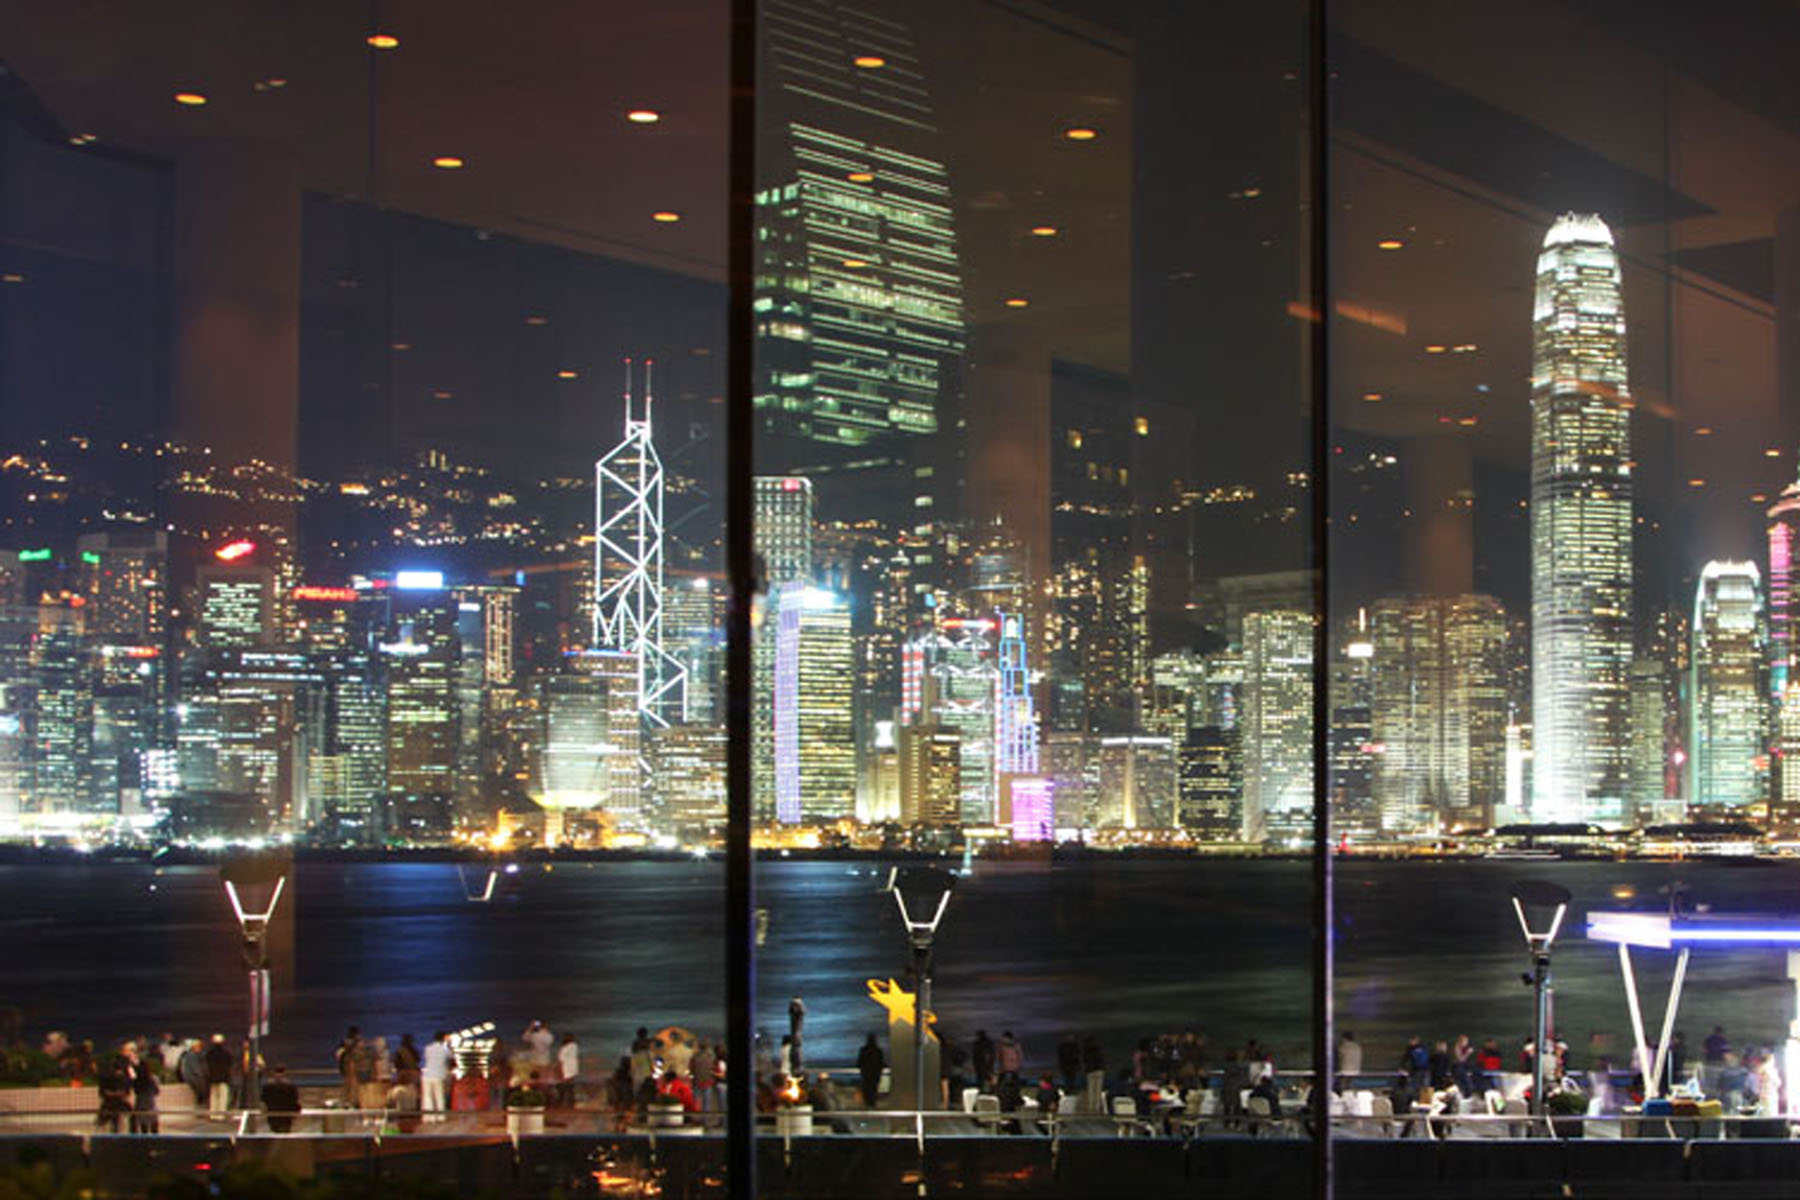 My last trip with her watching Hong Kong's Symphony of Lights